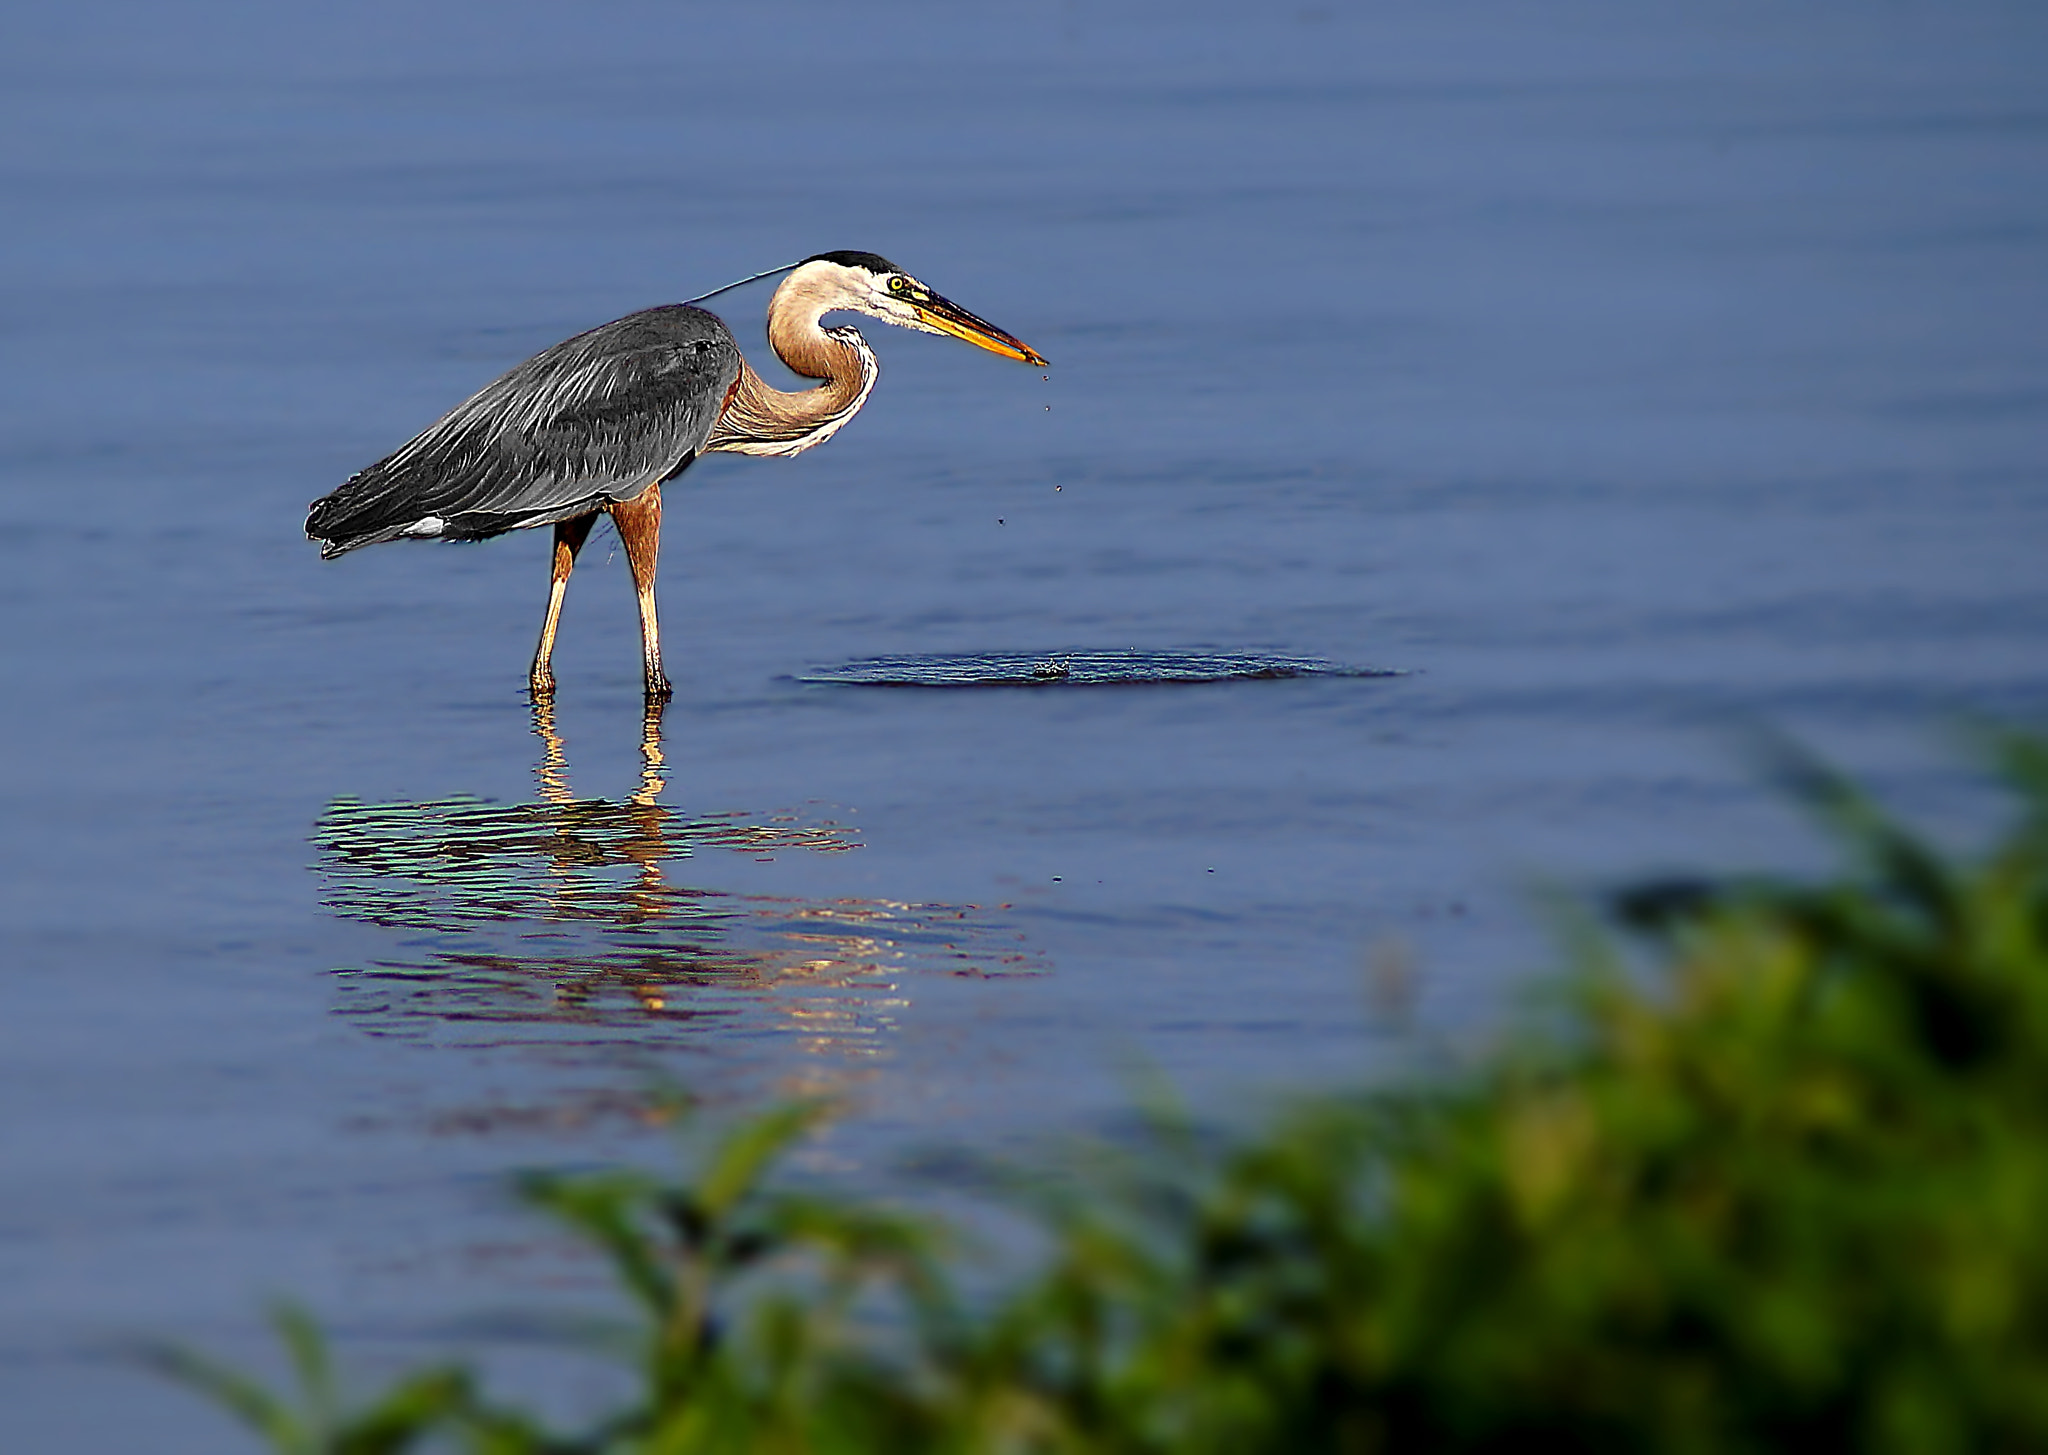 Photograph Great Blue Heron by Cherylorraine Smith on 500px